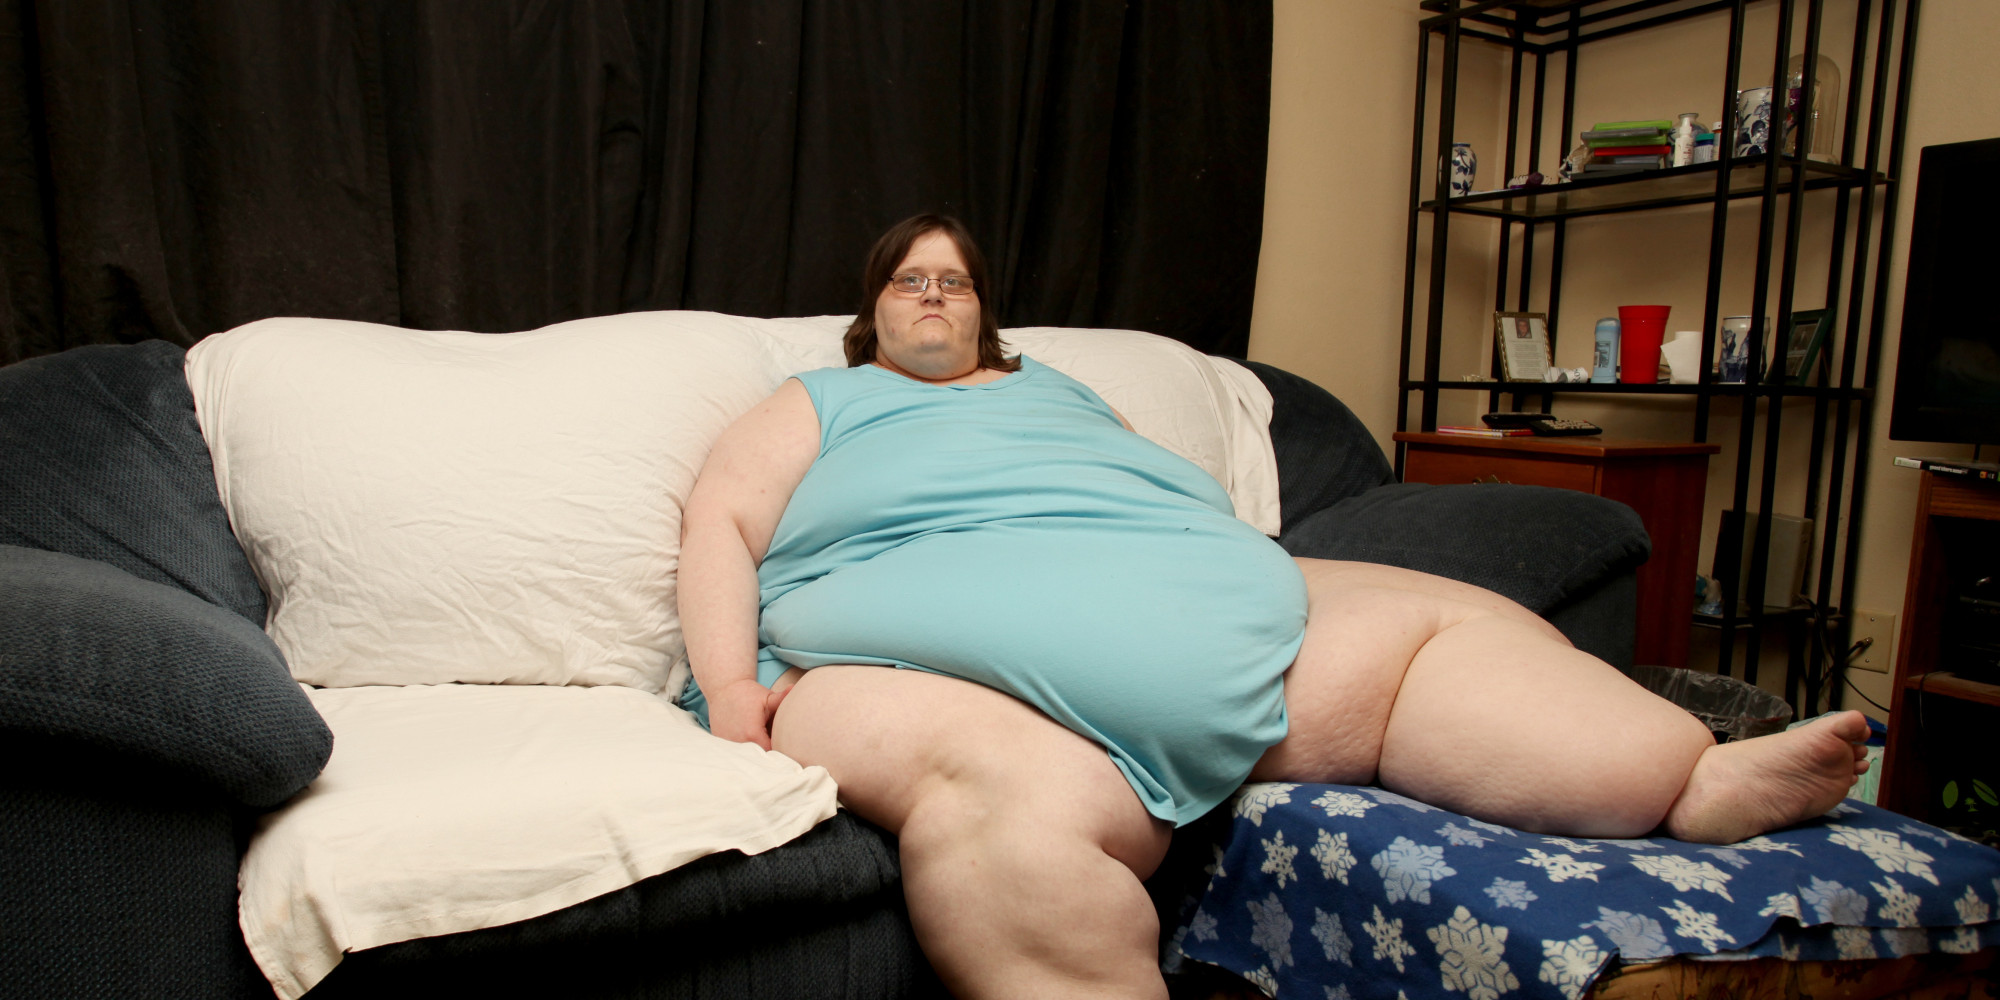 World s Fattest Woman Attempts Heaviest Woman In The World 2014